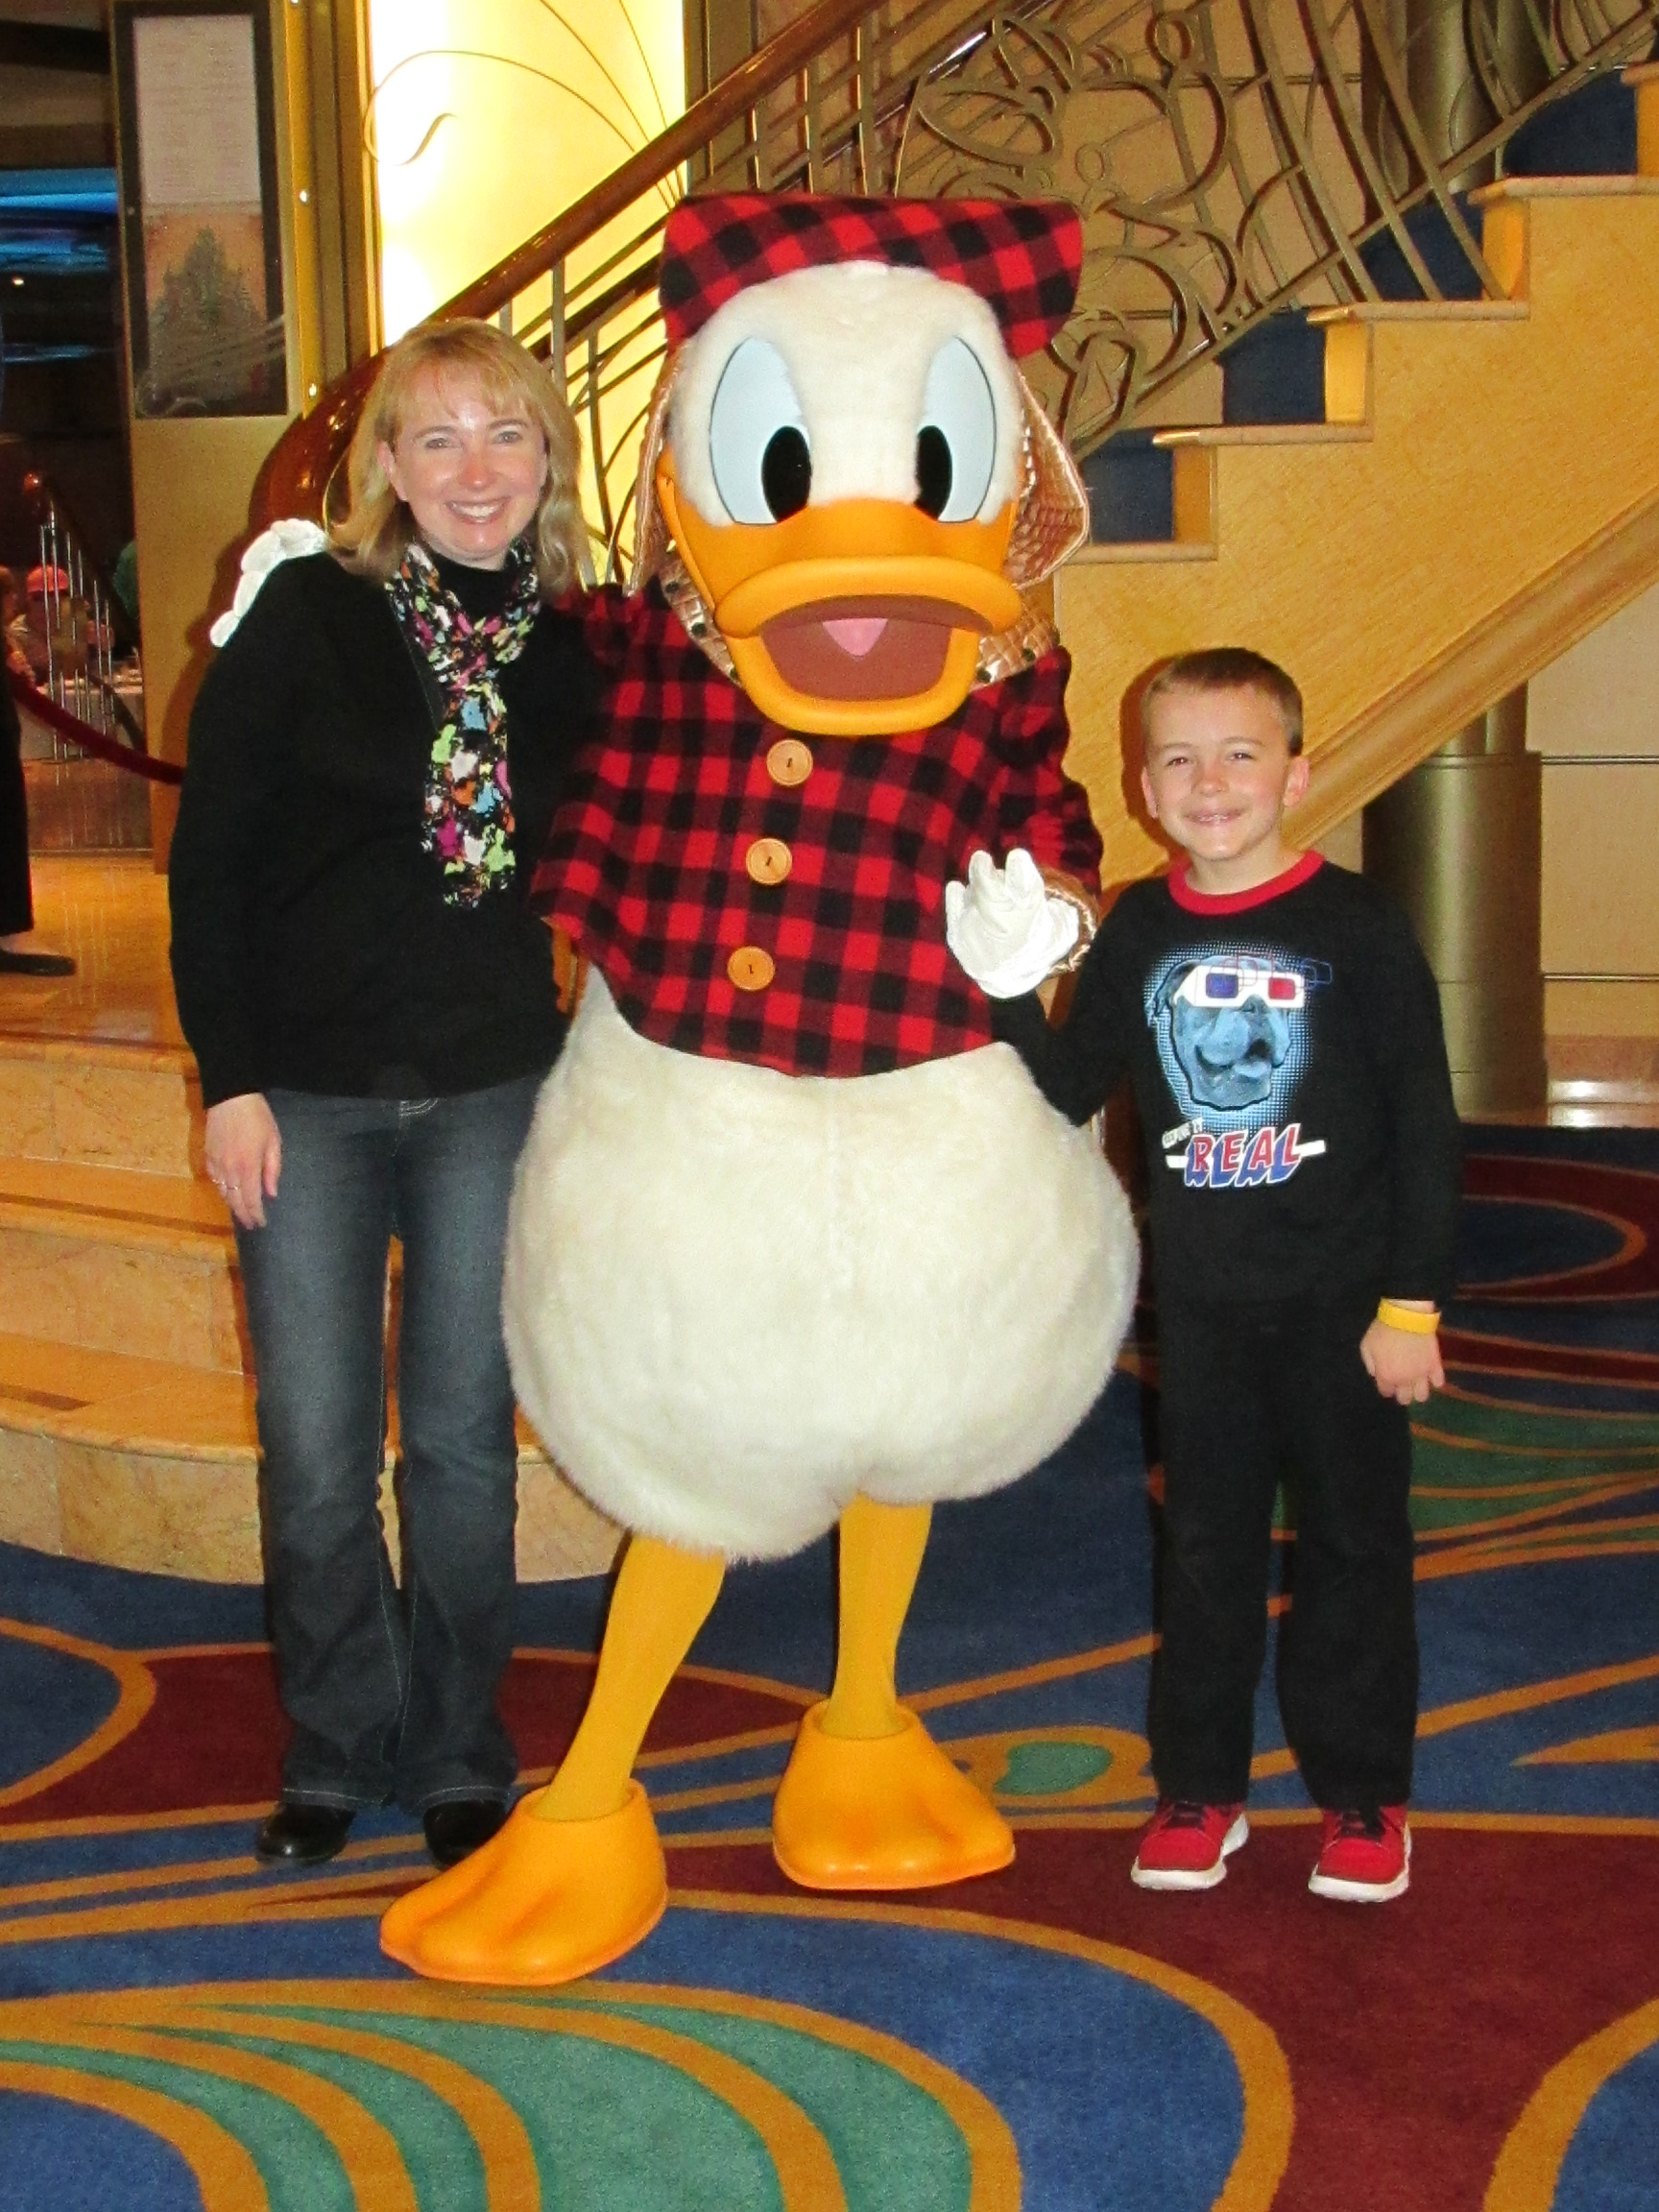 Meeting Donald